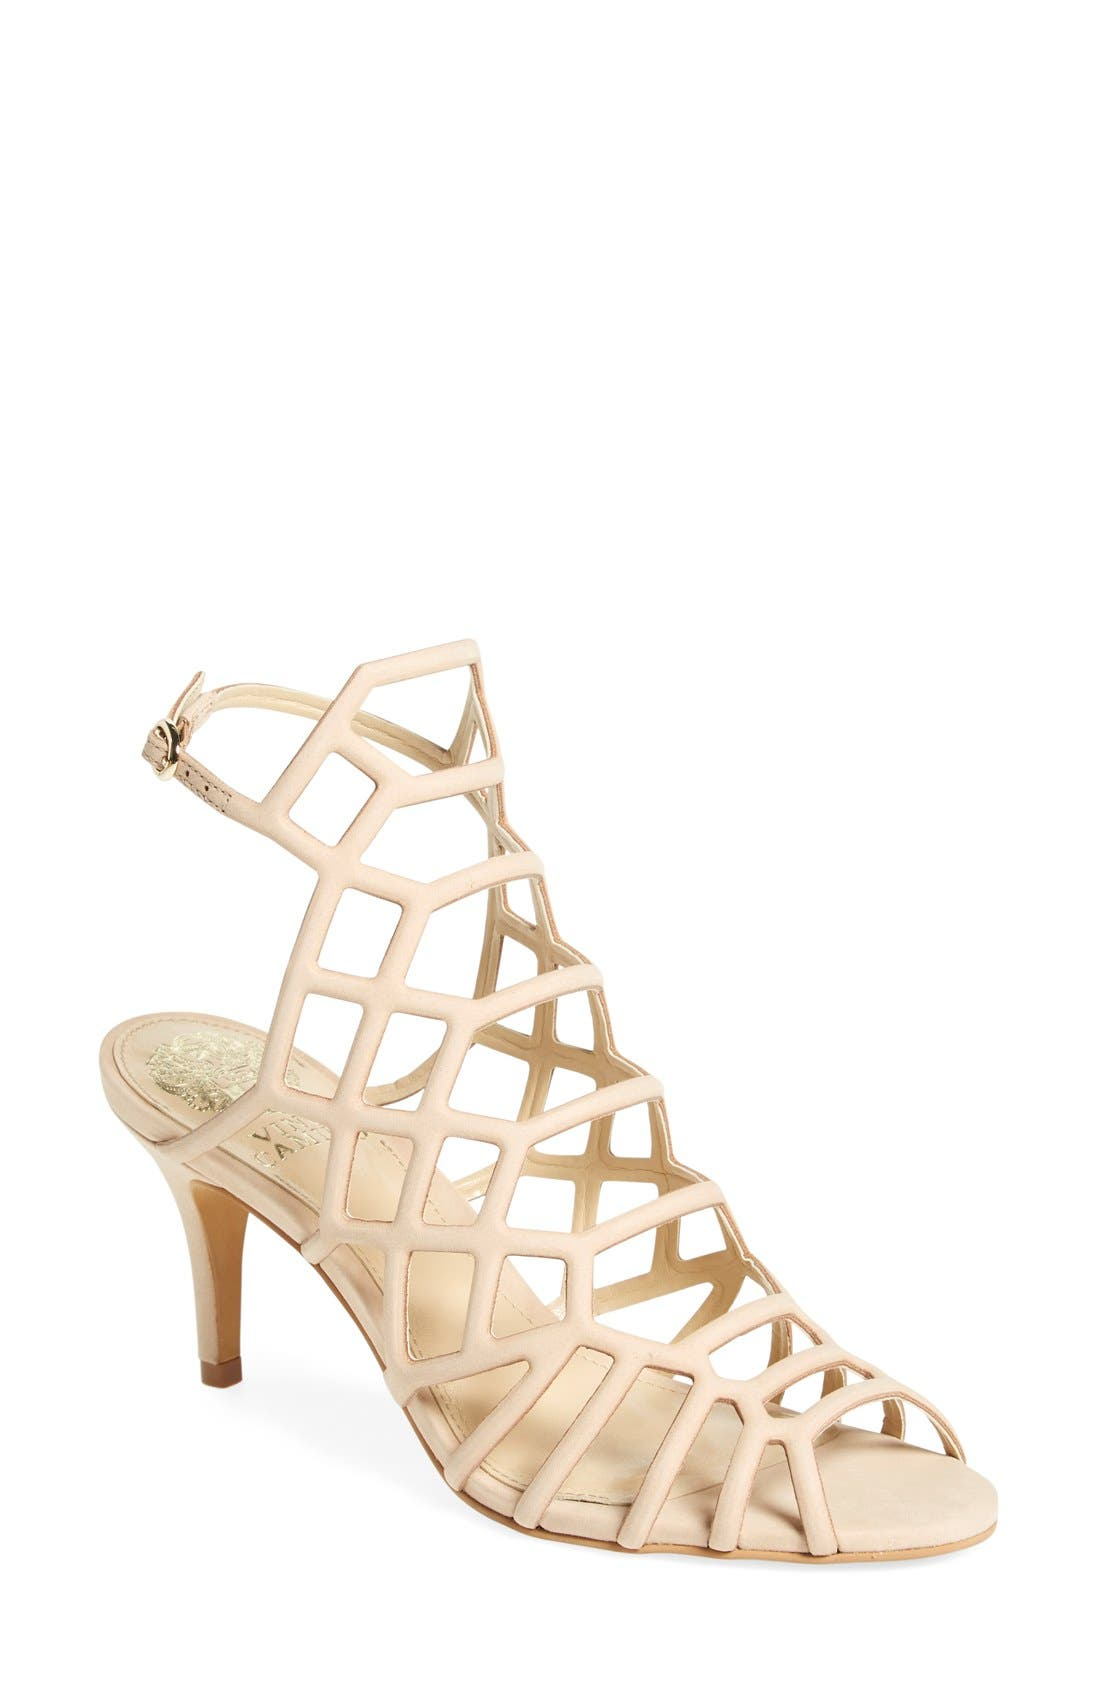 'Paxton' Slingback Sandal,                         Main,                         color, Nude Leather